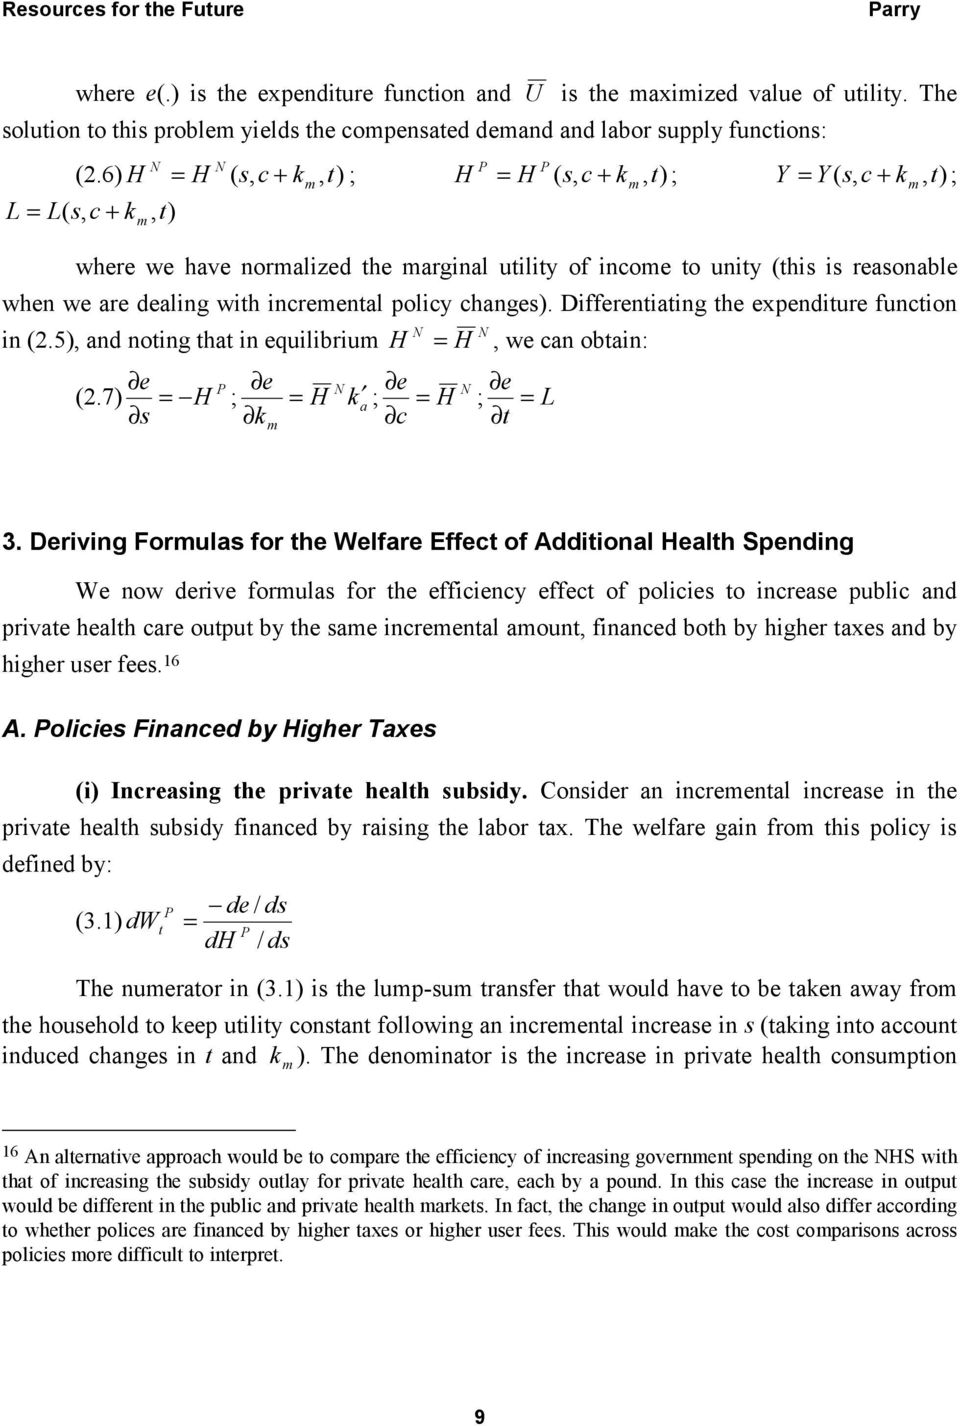 increentl policy chnges). Differentiting the expenditure function in (2.5), nd noting tht in equilibriu e (2.7) = H s e k ; = H k H = H, we cn obtin: e ; = H c e ; = L t 3.